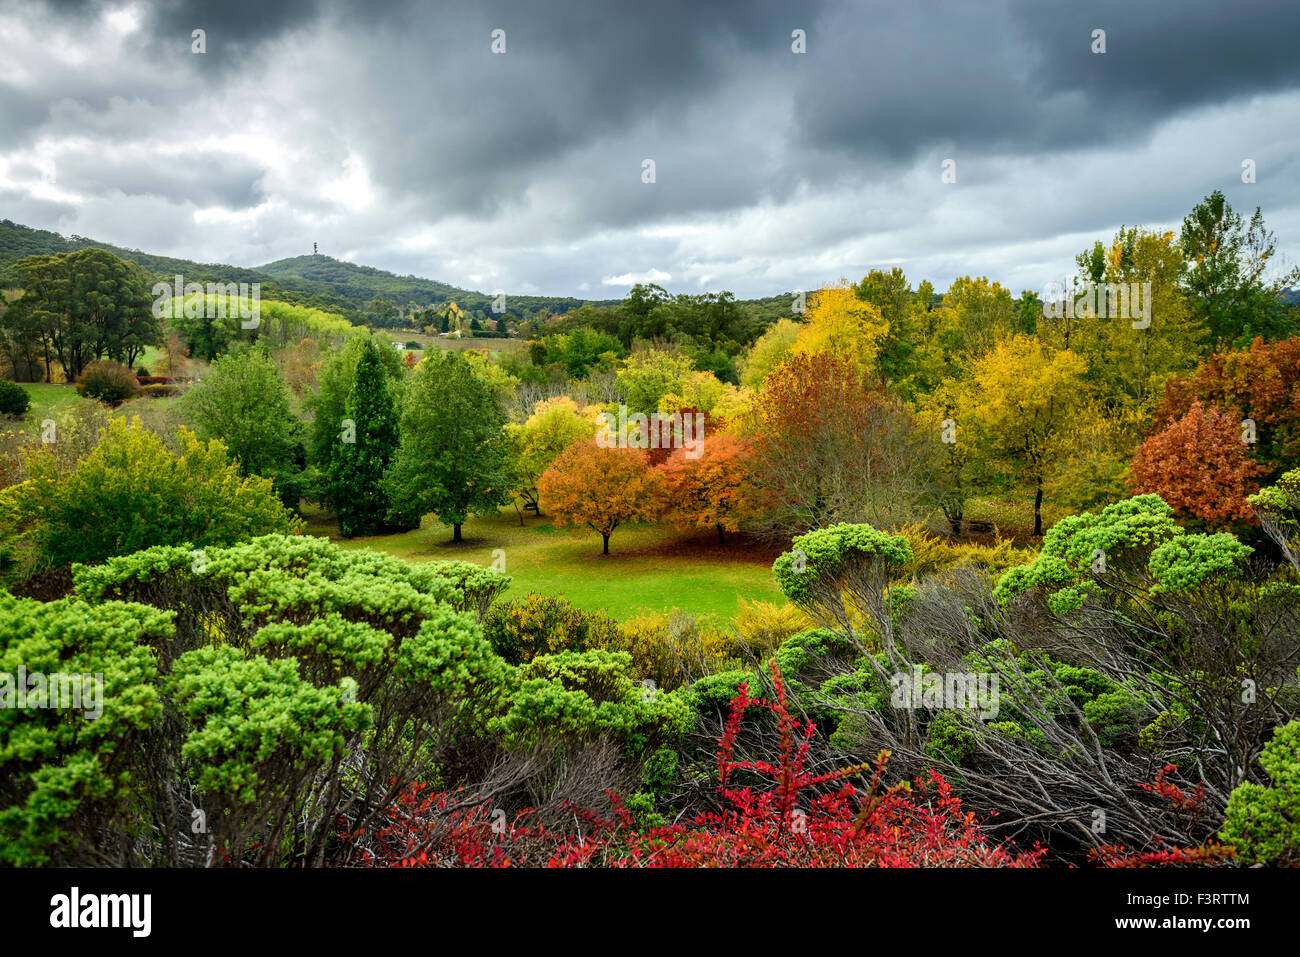 Autumn landscape under the rain in adelaide hills stock for Adelaide hills landscape